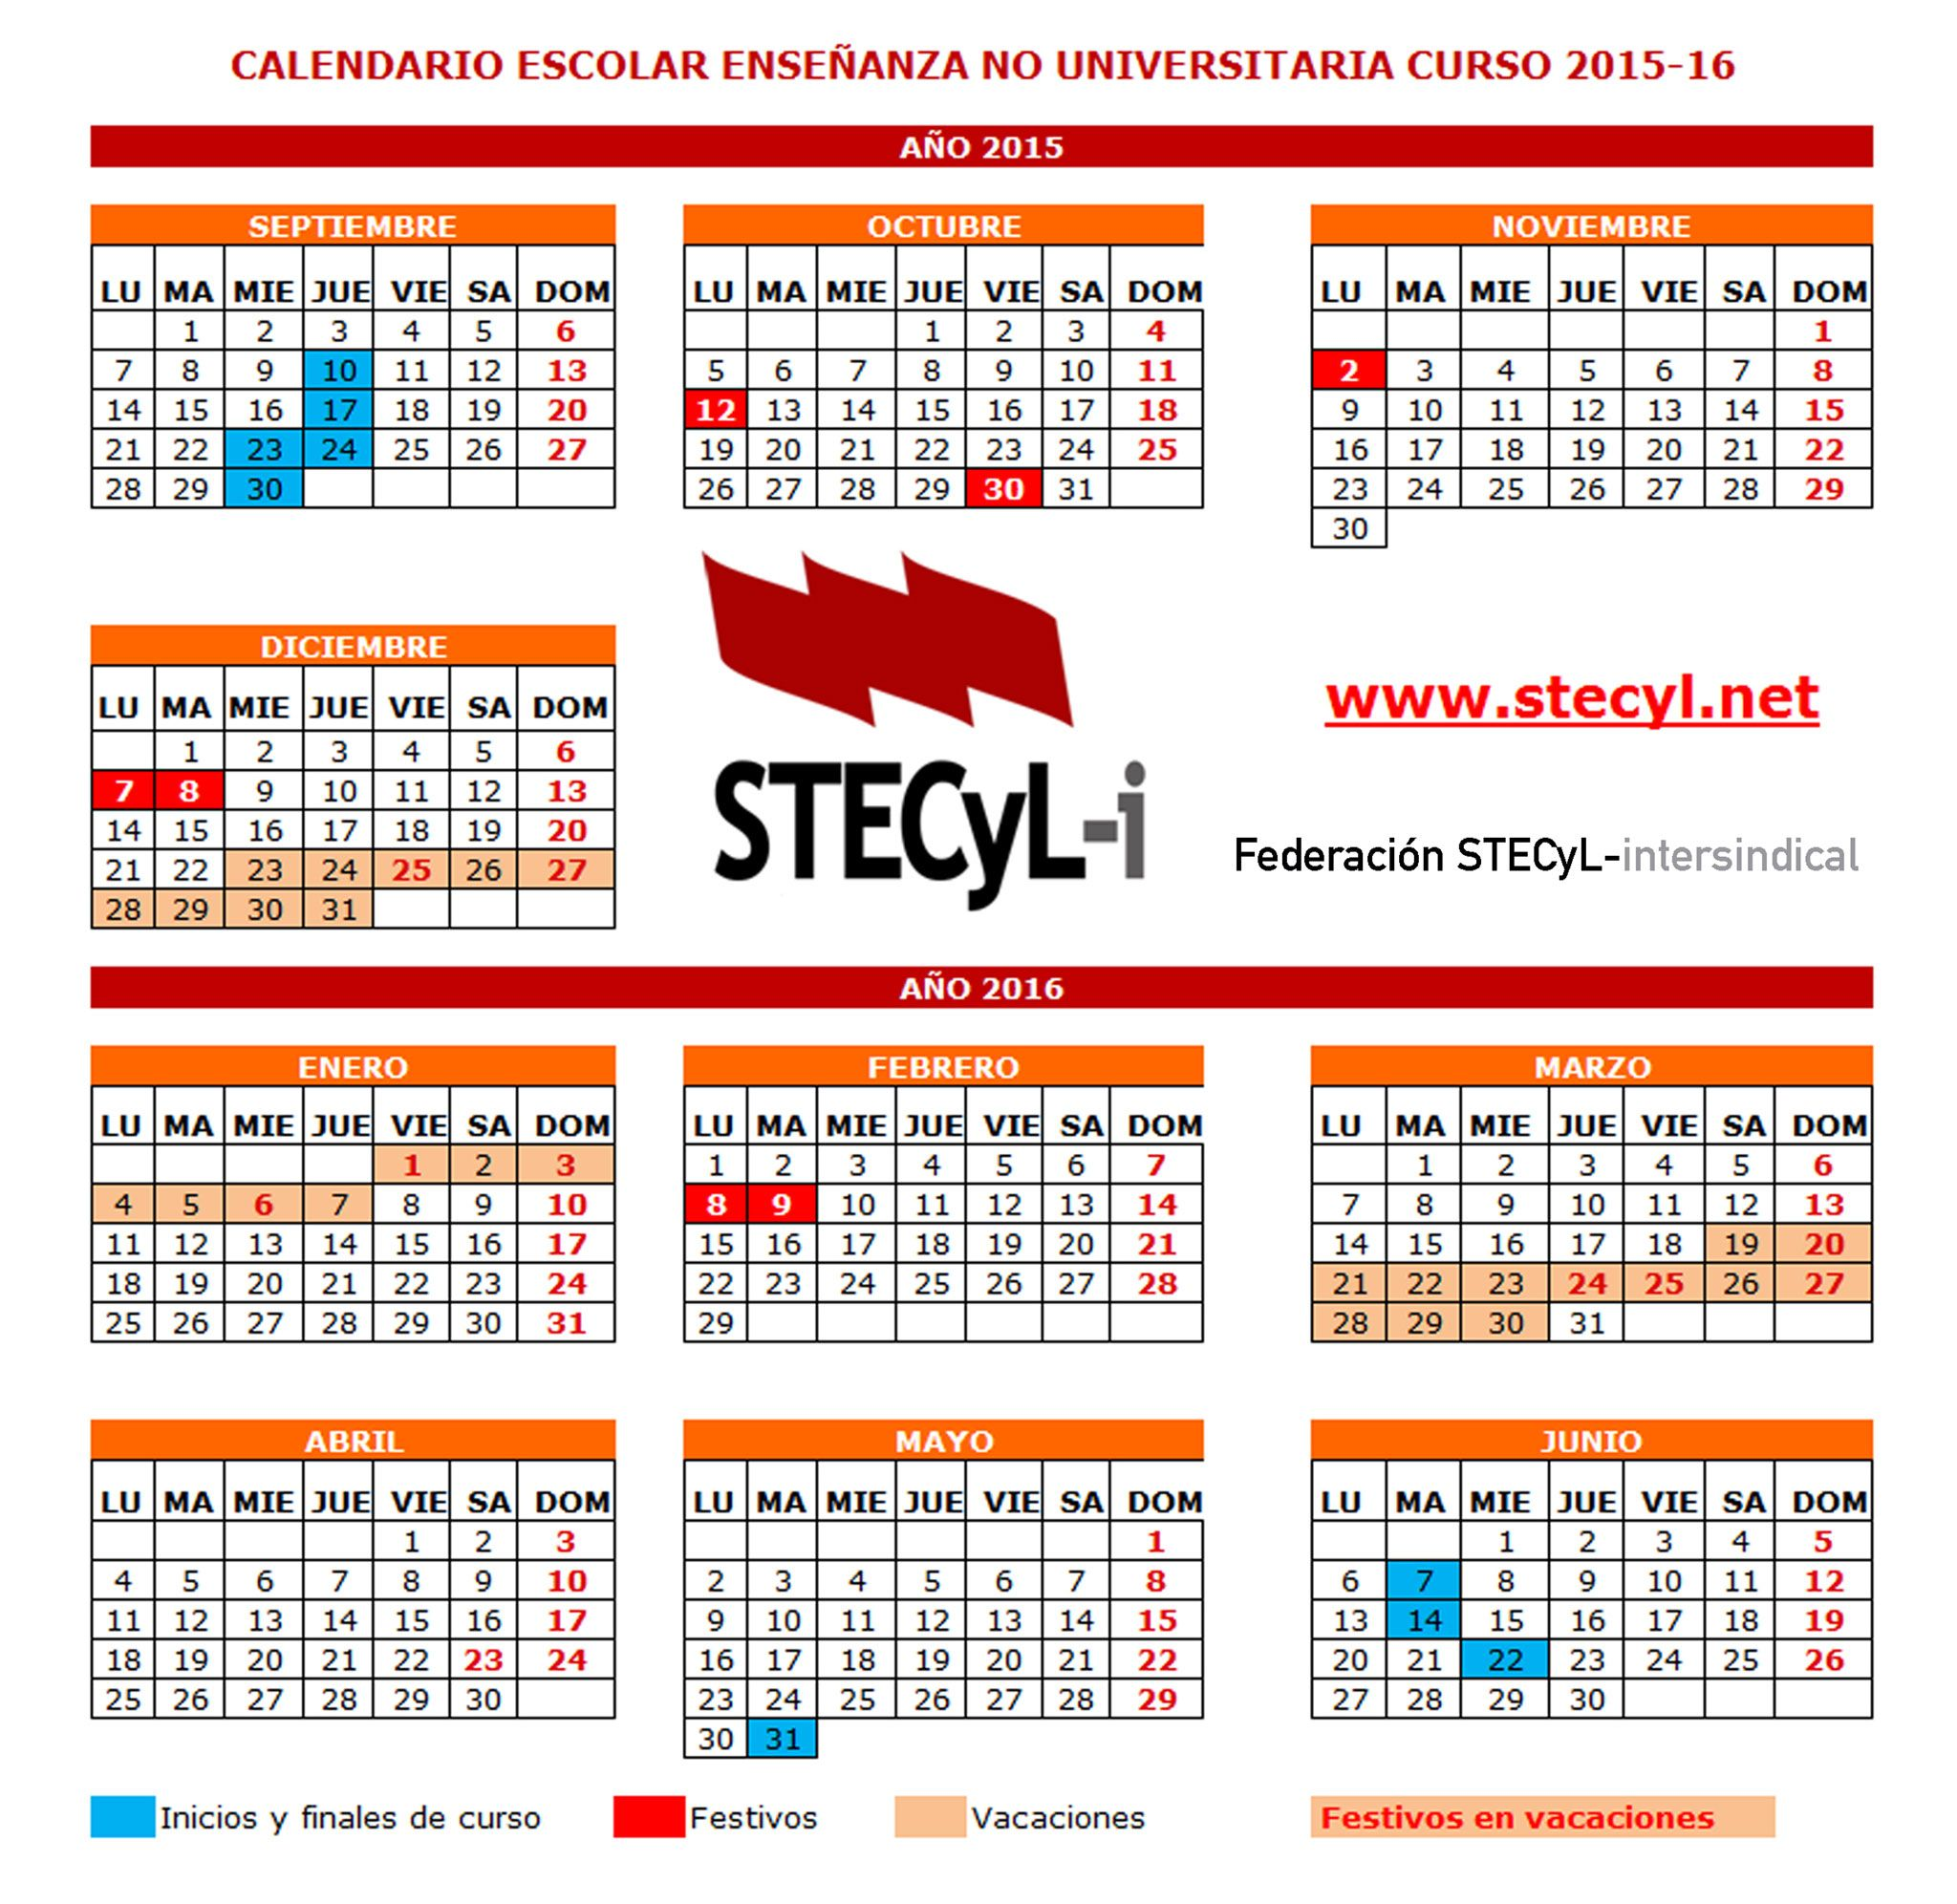 Calendario Escolar 2015 16 Enseñanzas No Universitarias Cyl